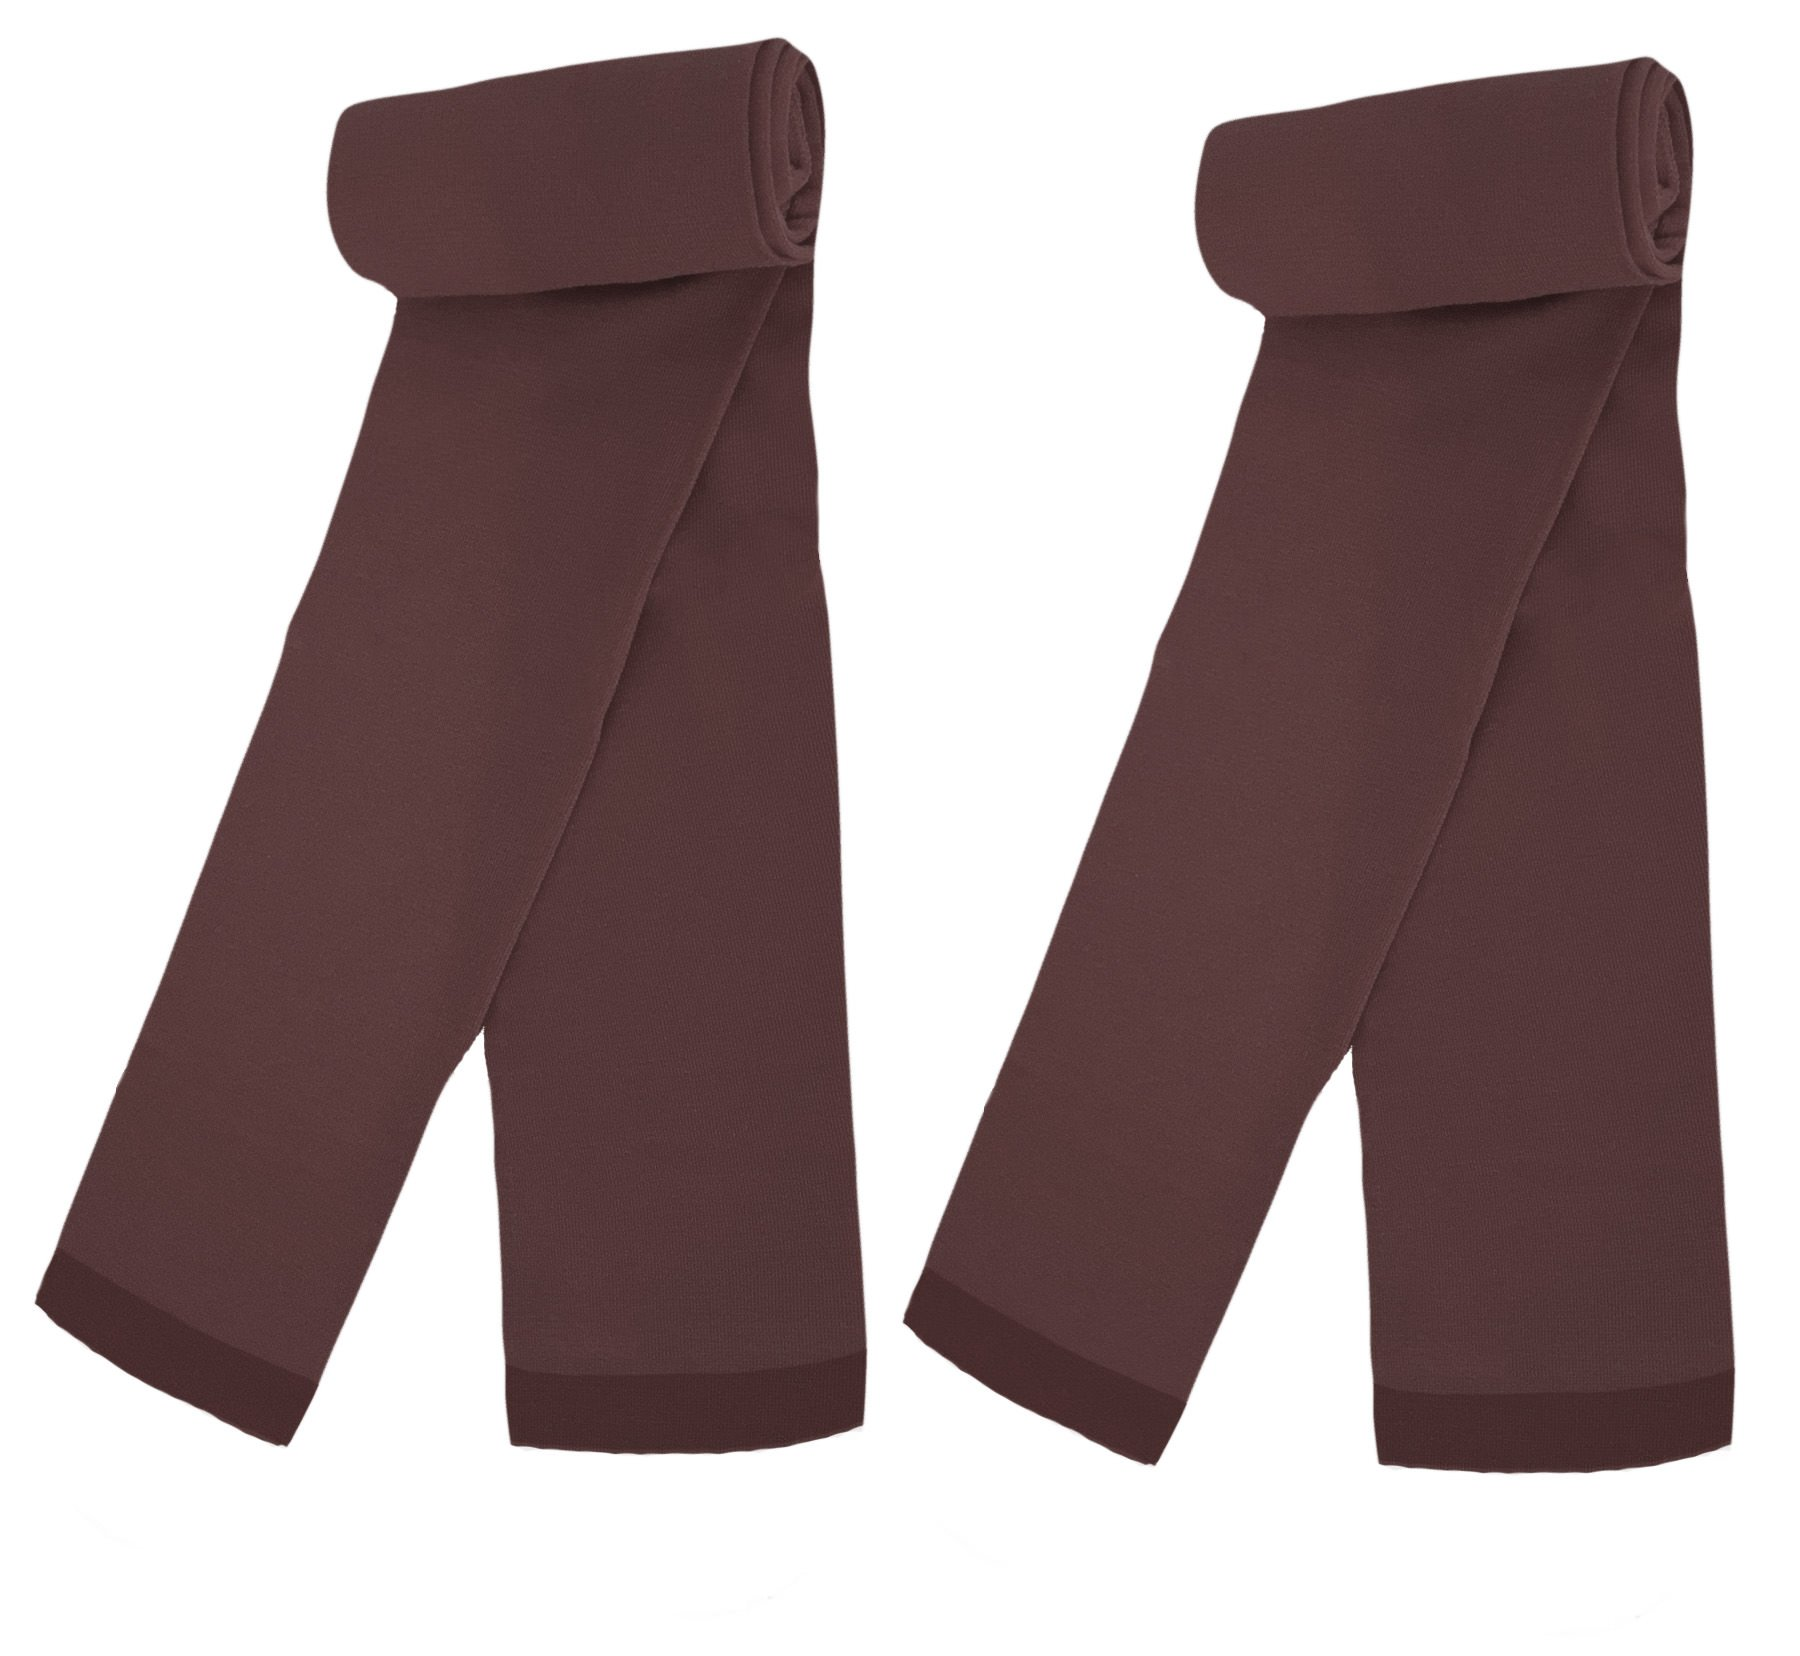 Country Kids Big Girls' Stretchy Pima Cotton Above Ankle Footless Dance Leggings Tights, Pack of 2, Fits 9-11 Years, Chocolate